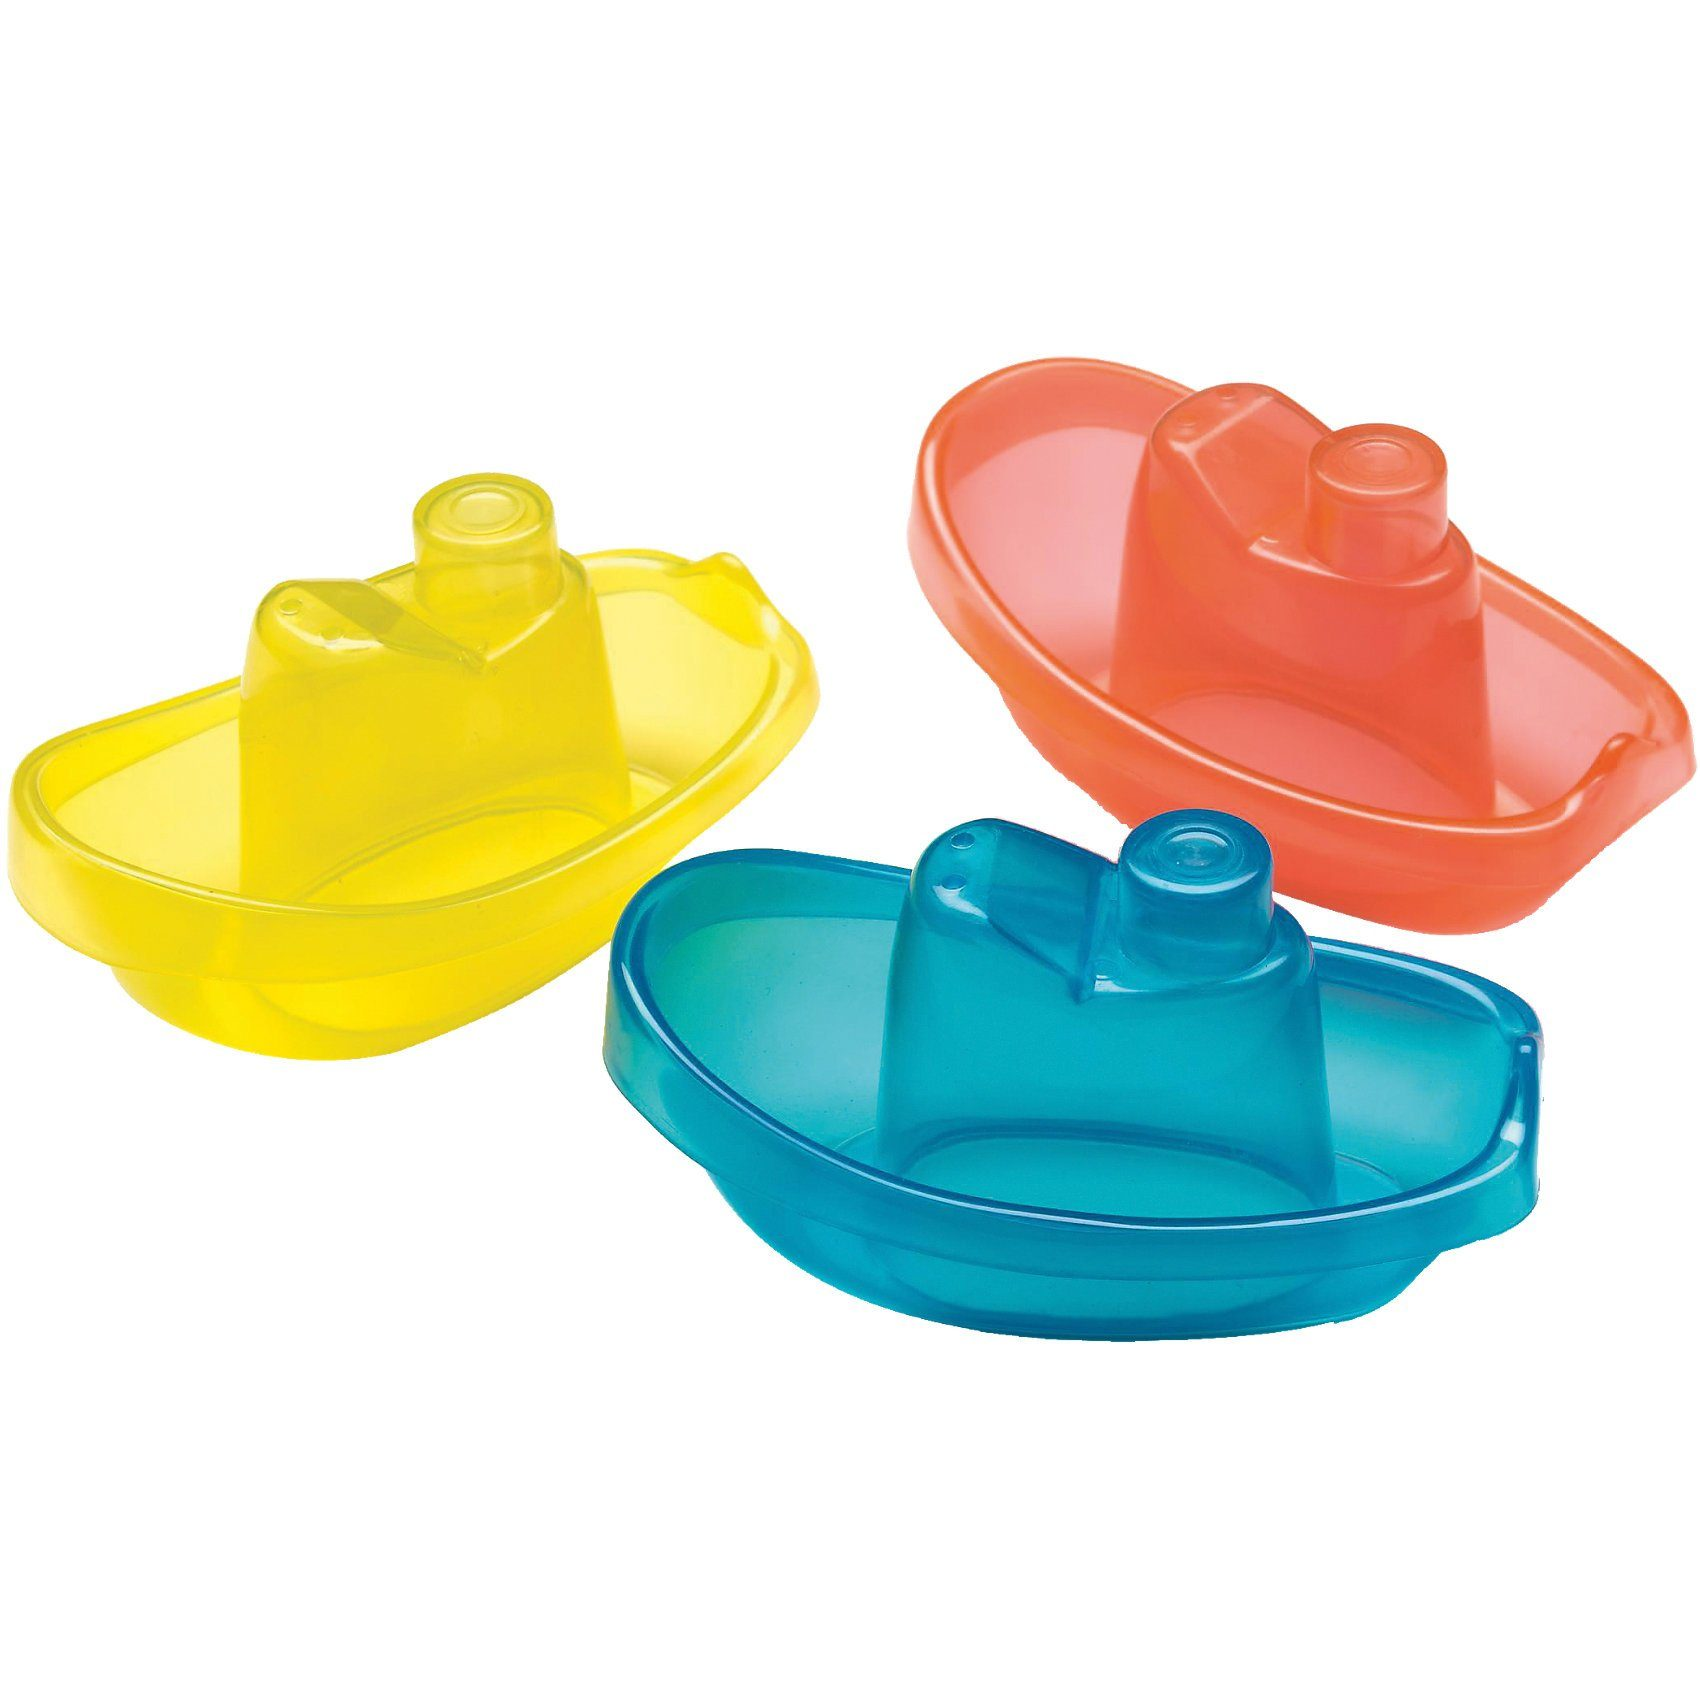 Playgro Bade-Boote 3-teilig